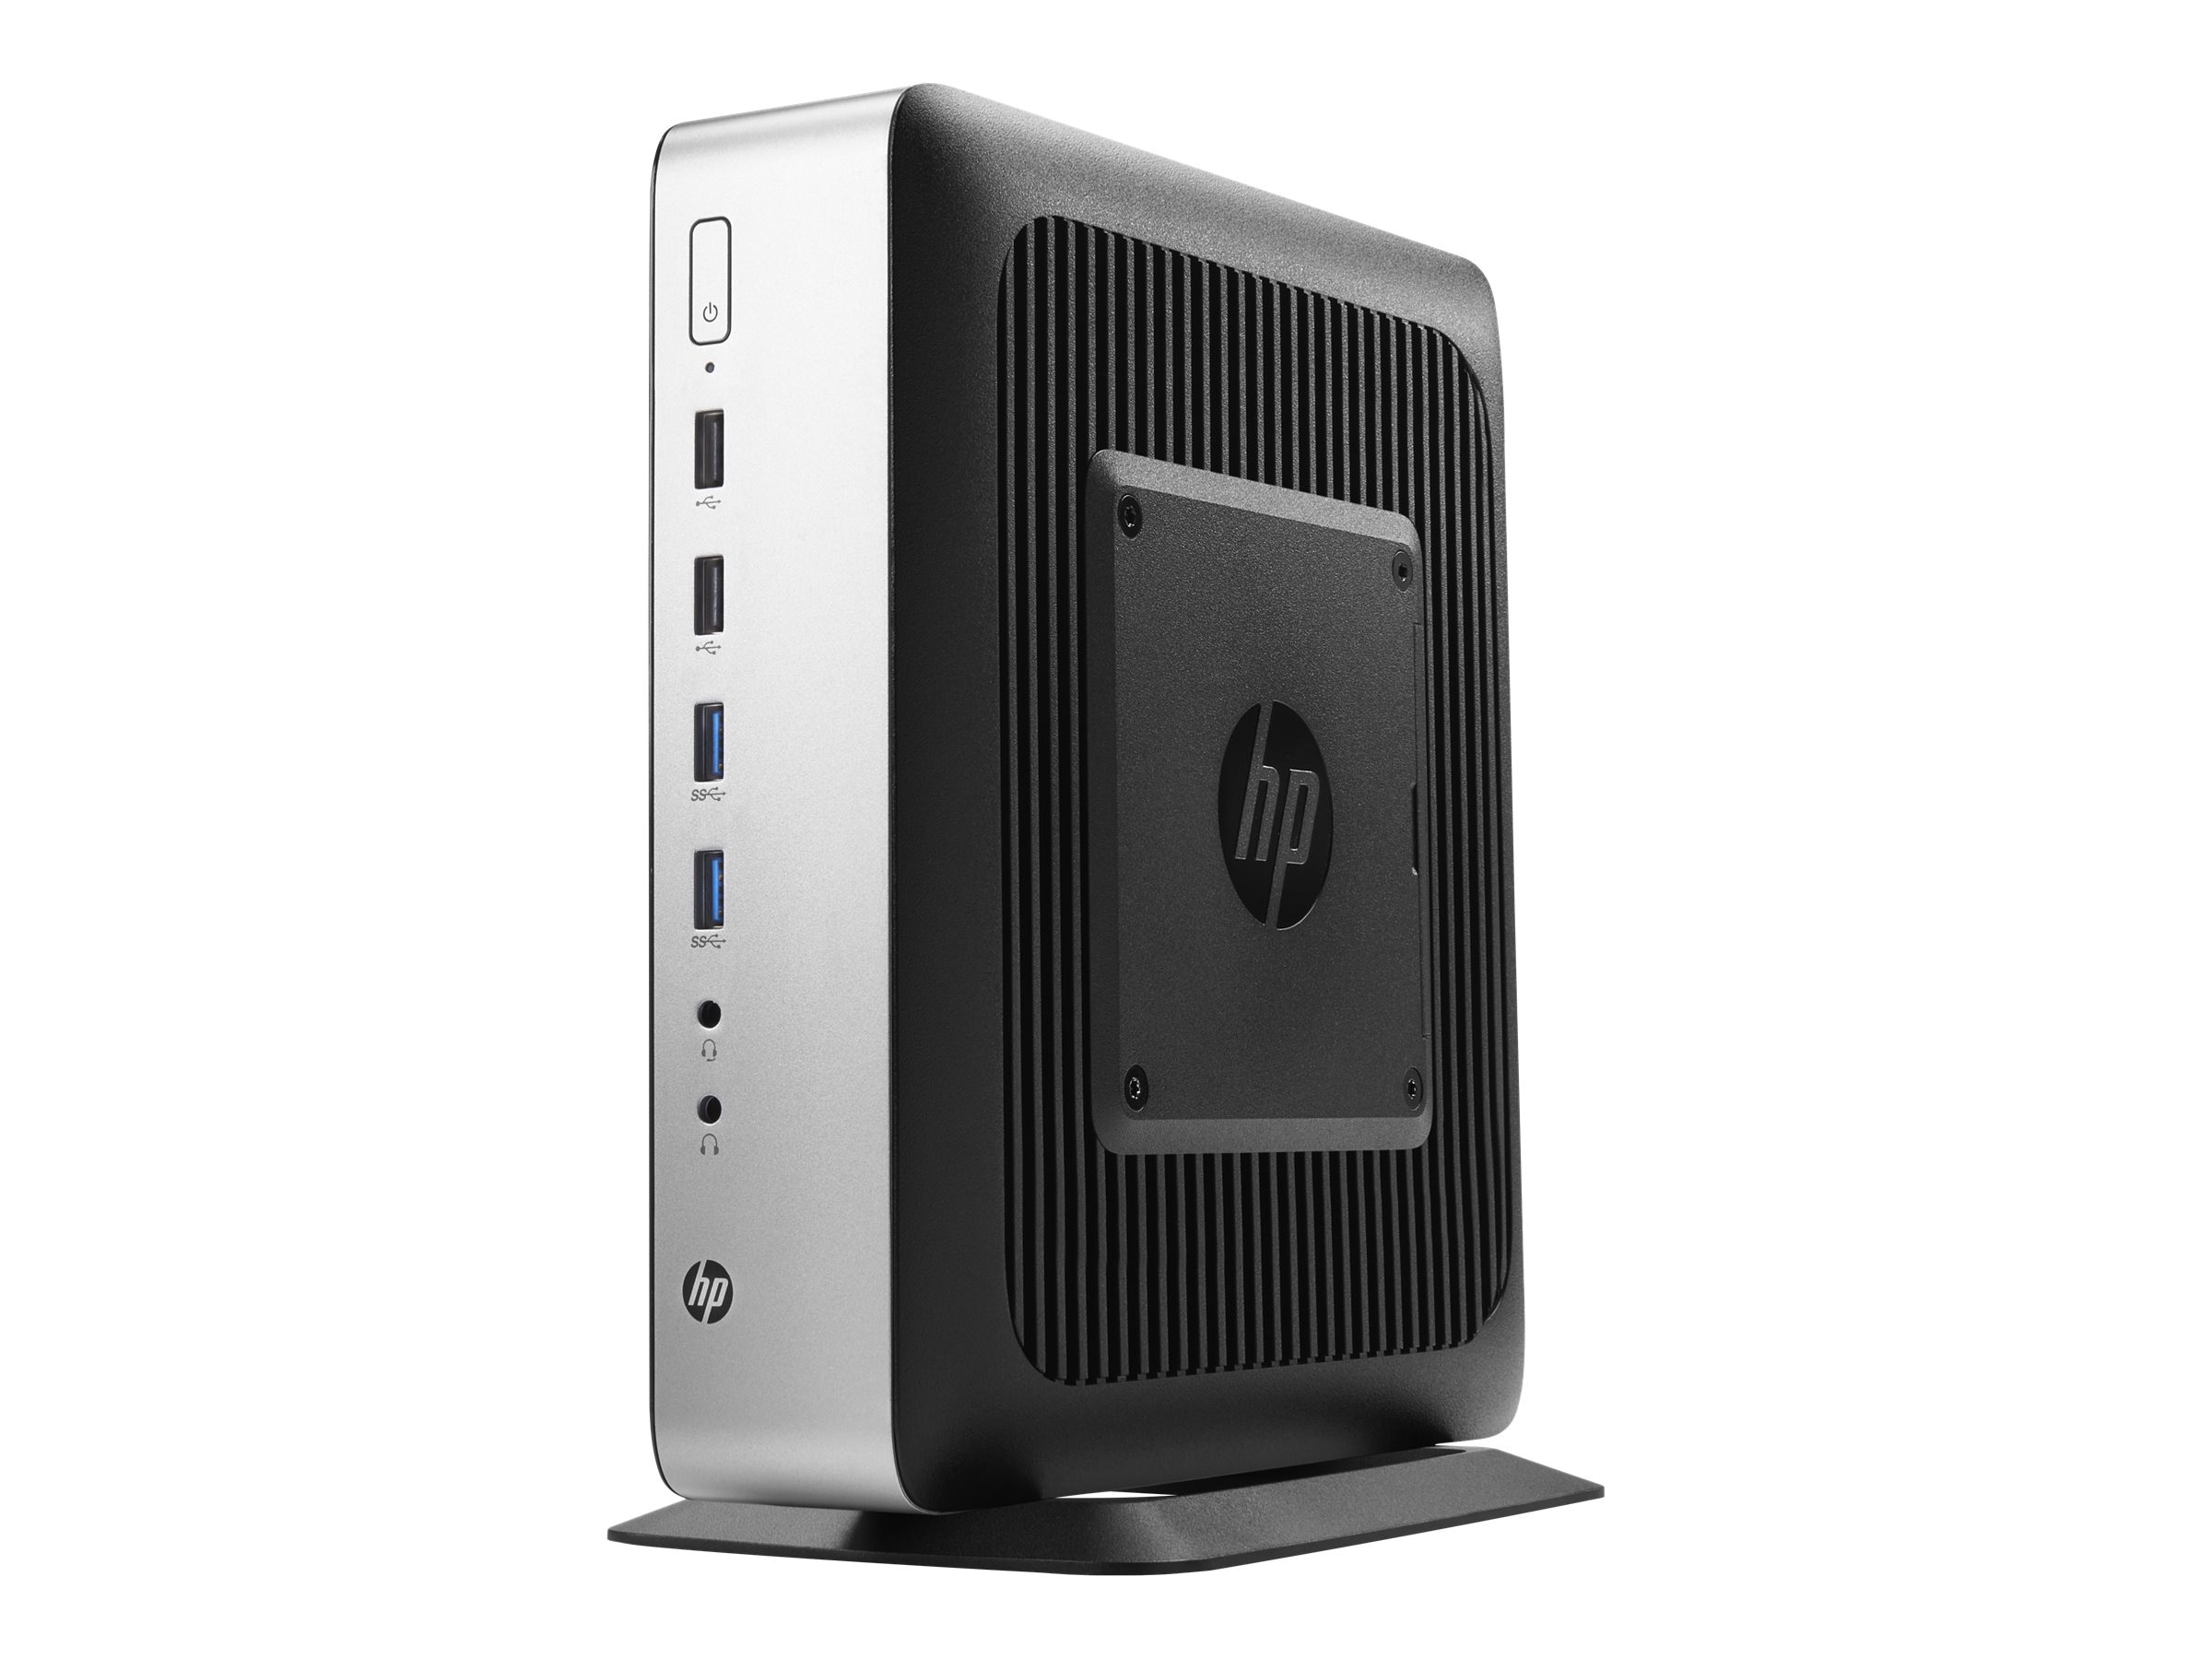 HP t730 Thin Client AMD QC RX-427BB 2.7GHz 8GB 16GB Flash W2100 ThinPro, V2V30UT#ABA